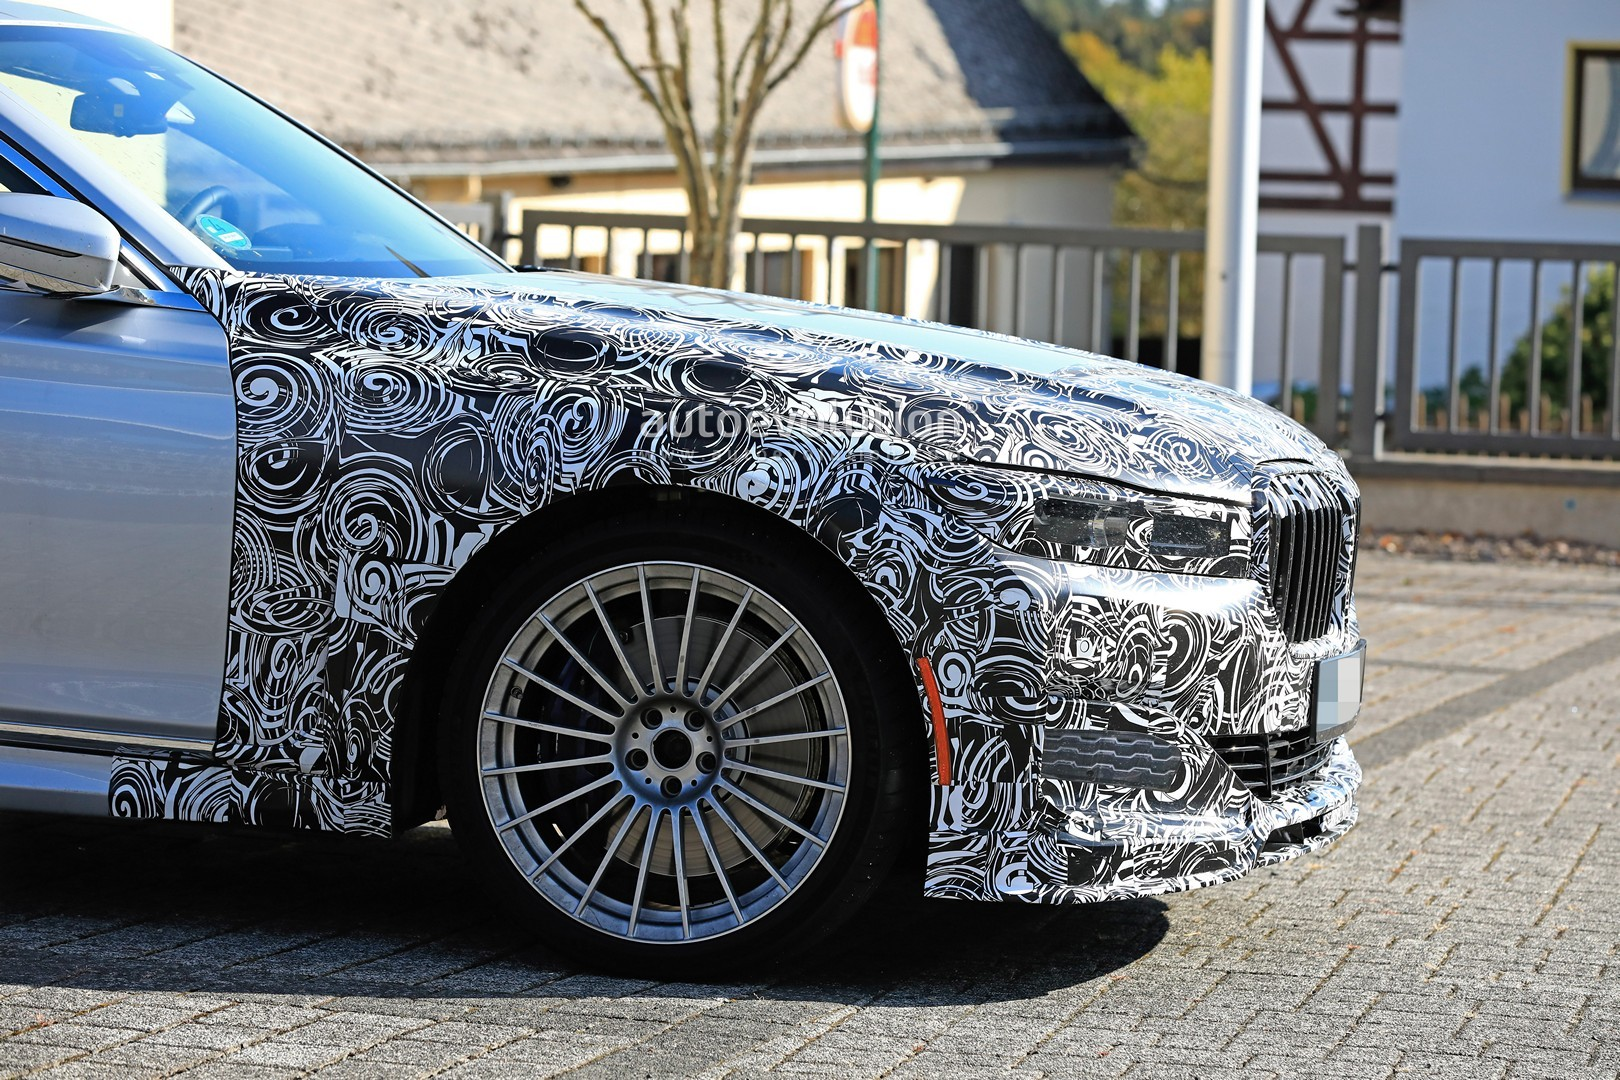 2020 Alpina B7 Spied In Detail Looks More Aggressive Than 7 Series